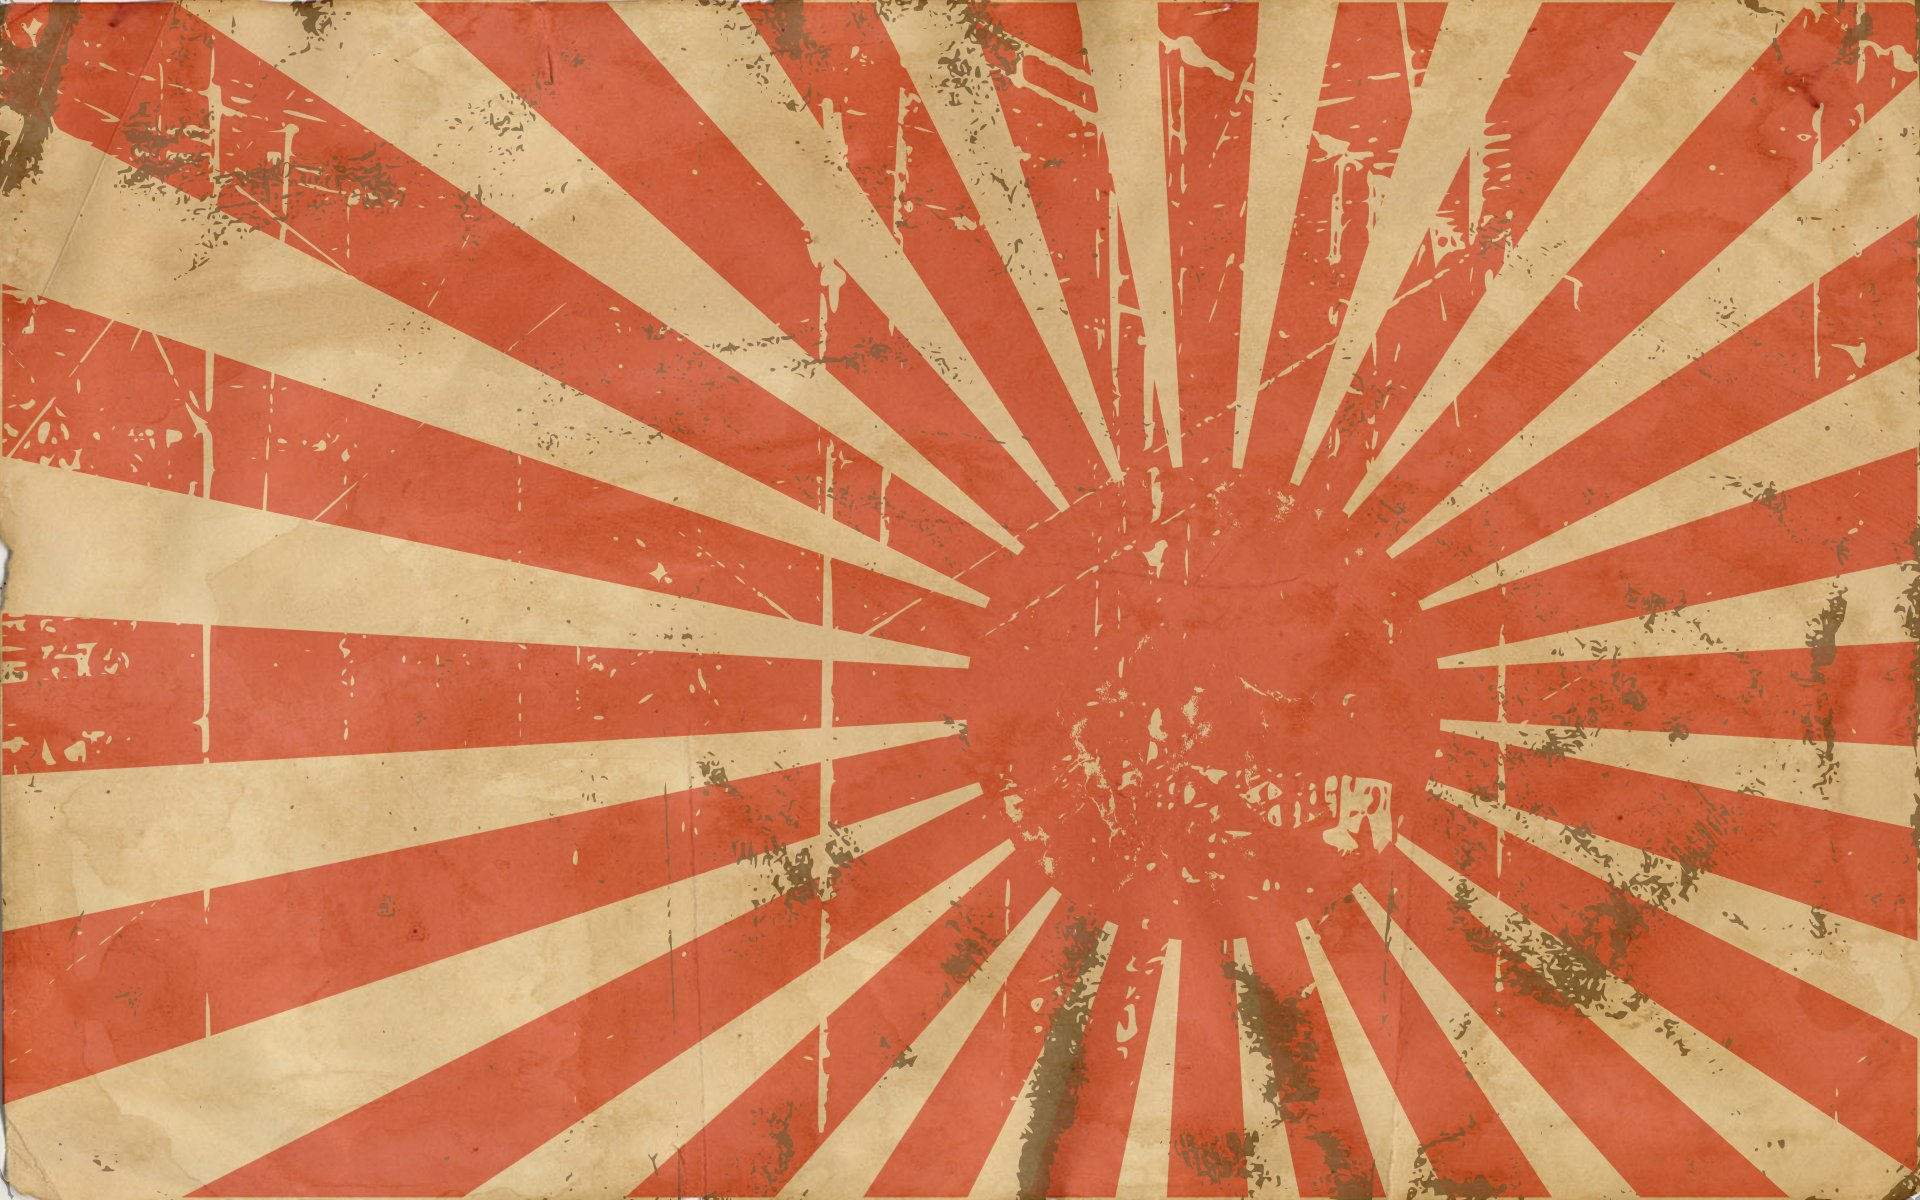 the reason behind the rise of japan as an imperialistic power After germany surrendered in may of 1945, allied attention focused on japan the island-hopping strategy adopted by the us navy successfully brought b-29 bombers within range of japan's home islands, and they carried out massive attacks involving high explosives, incendiary bombs, and finally the two most powerful weapons ever used in war: the newly-invented atomic bombs dropped on.